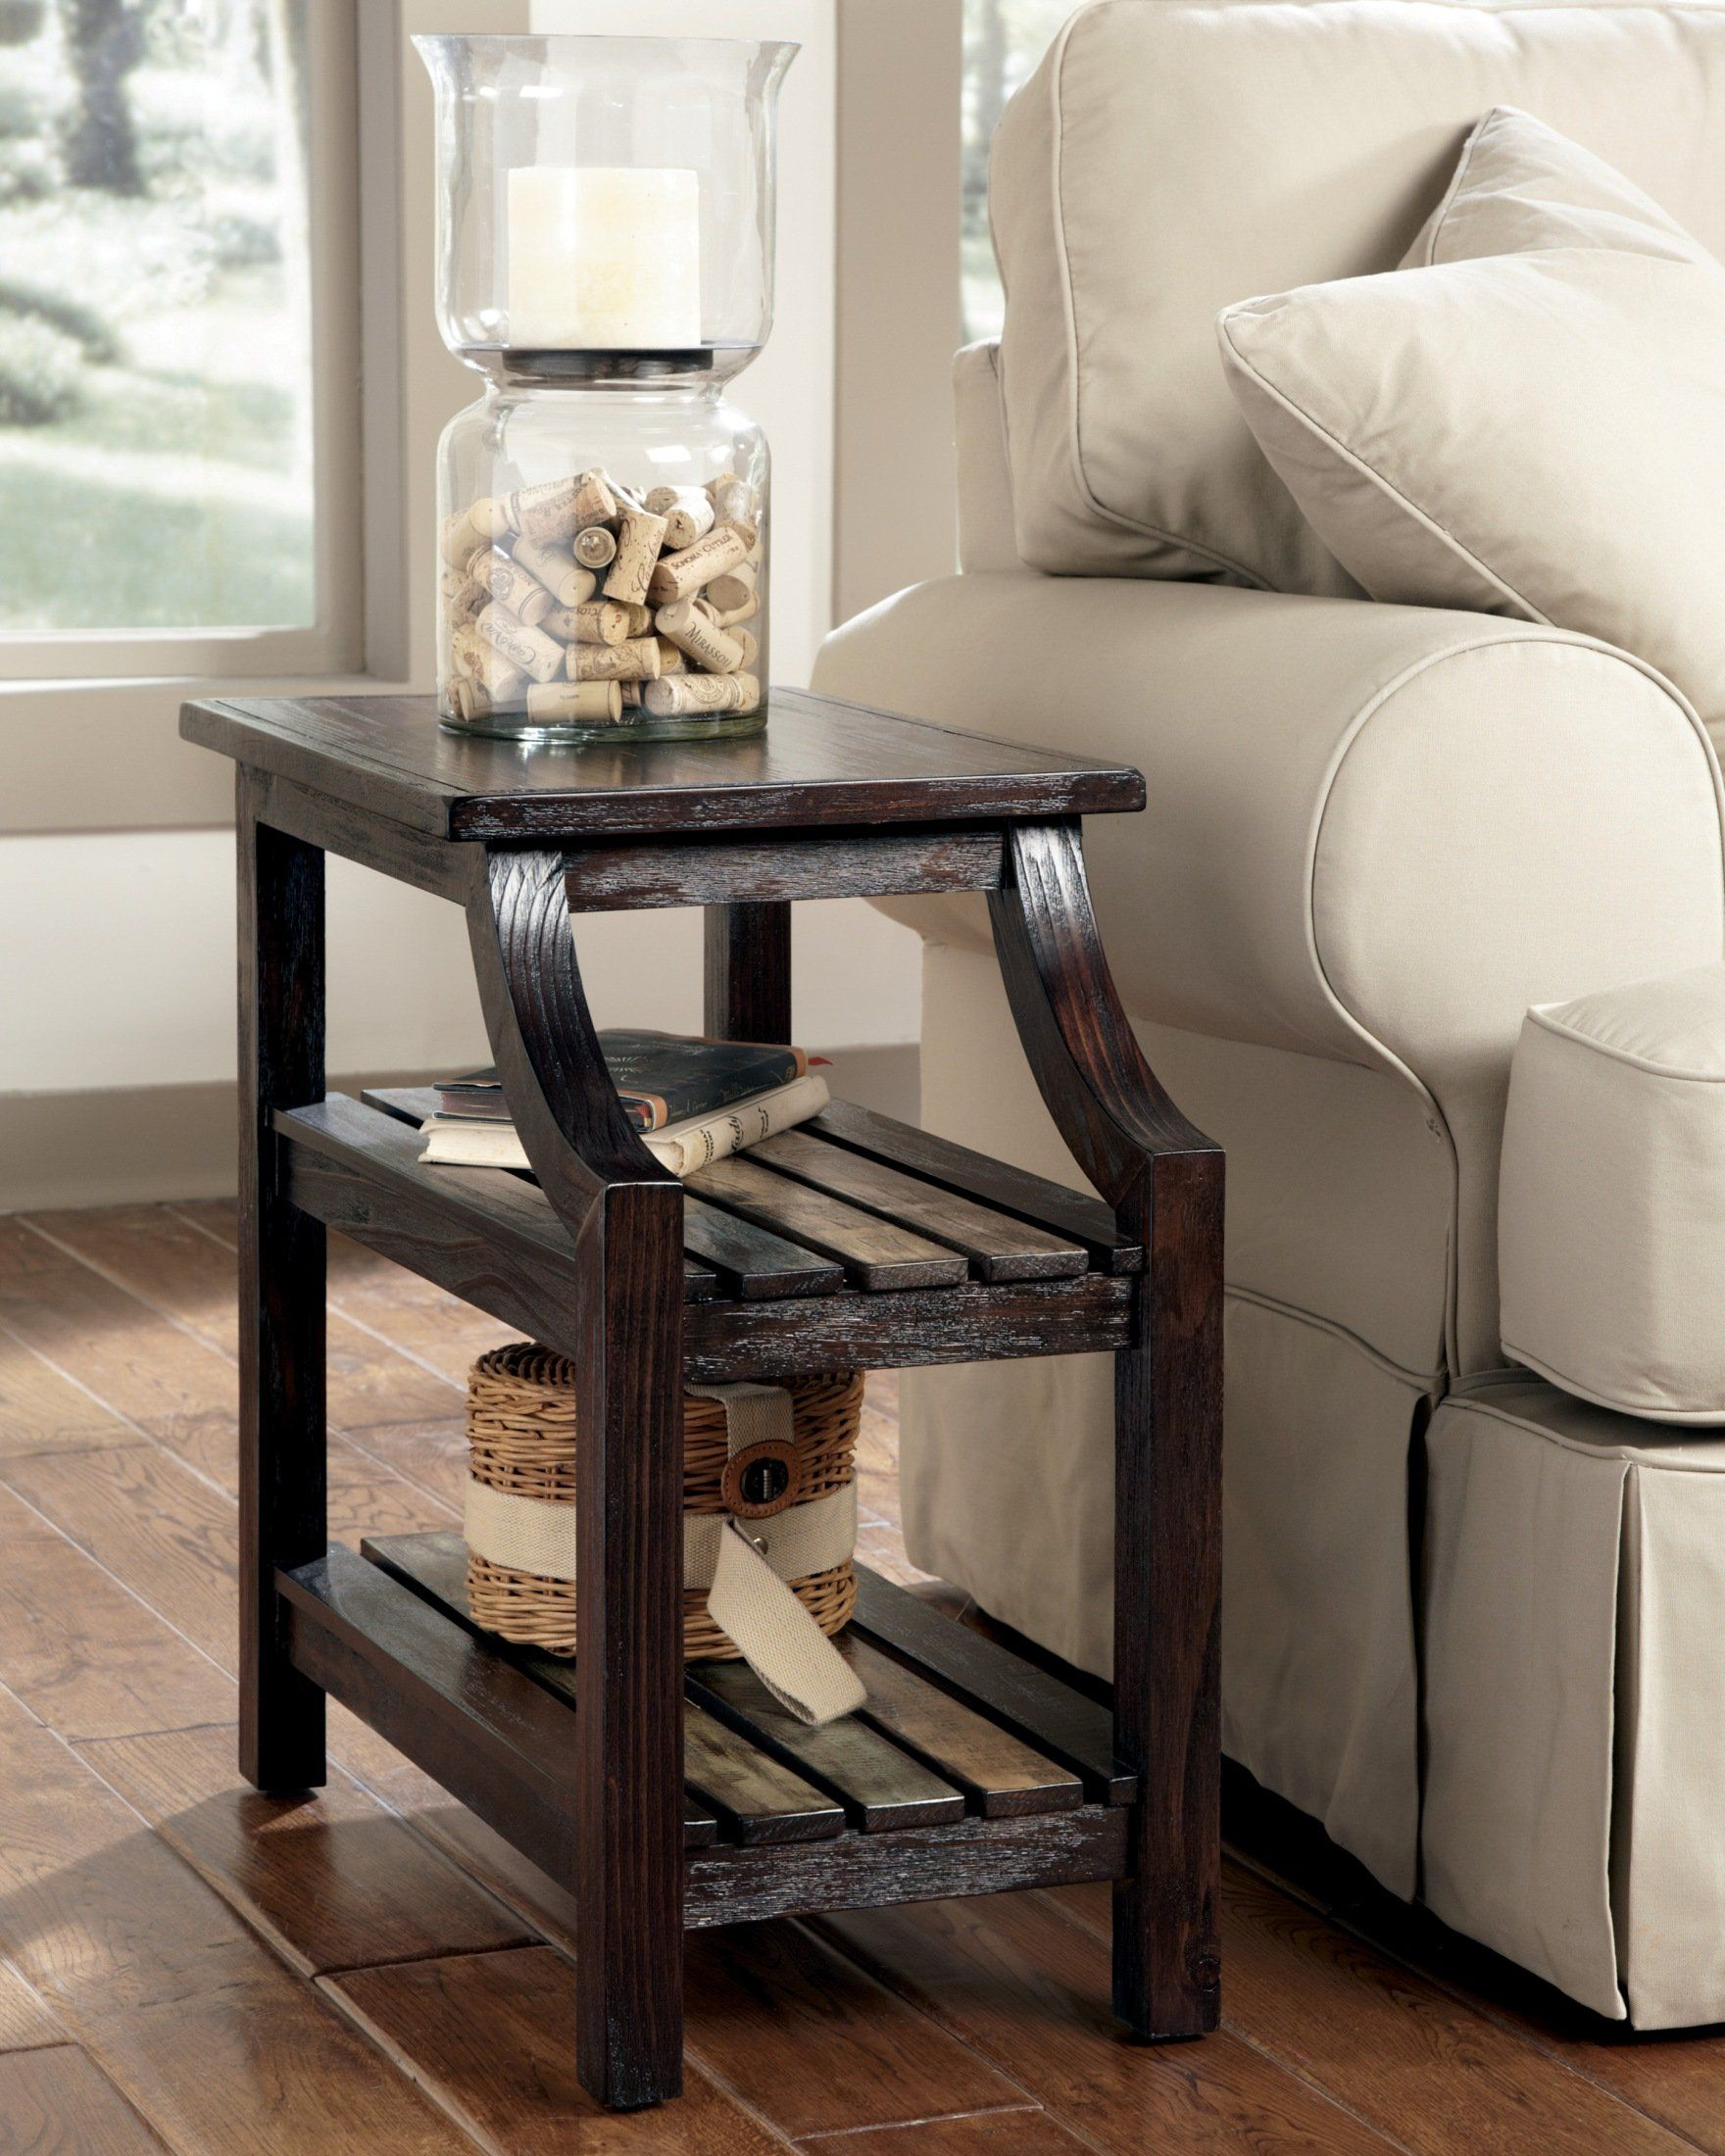 Ashley Furniture Mestler Chairside Rustic End Table GORGEOUS